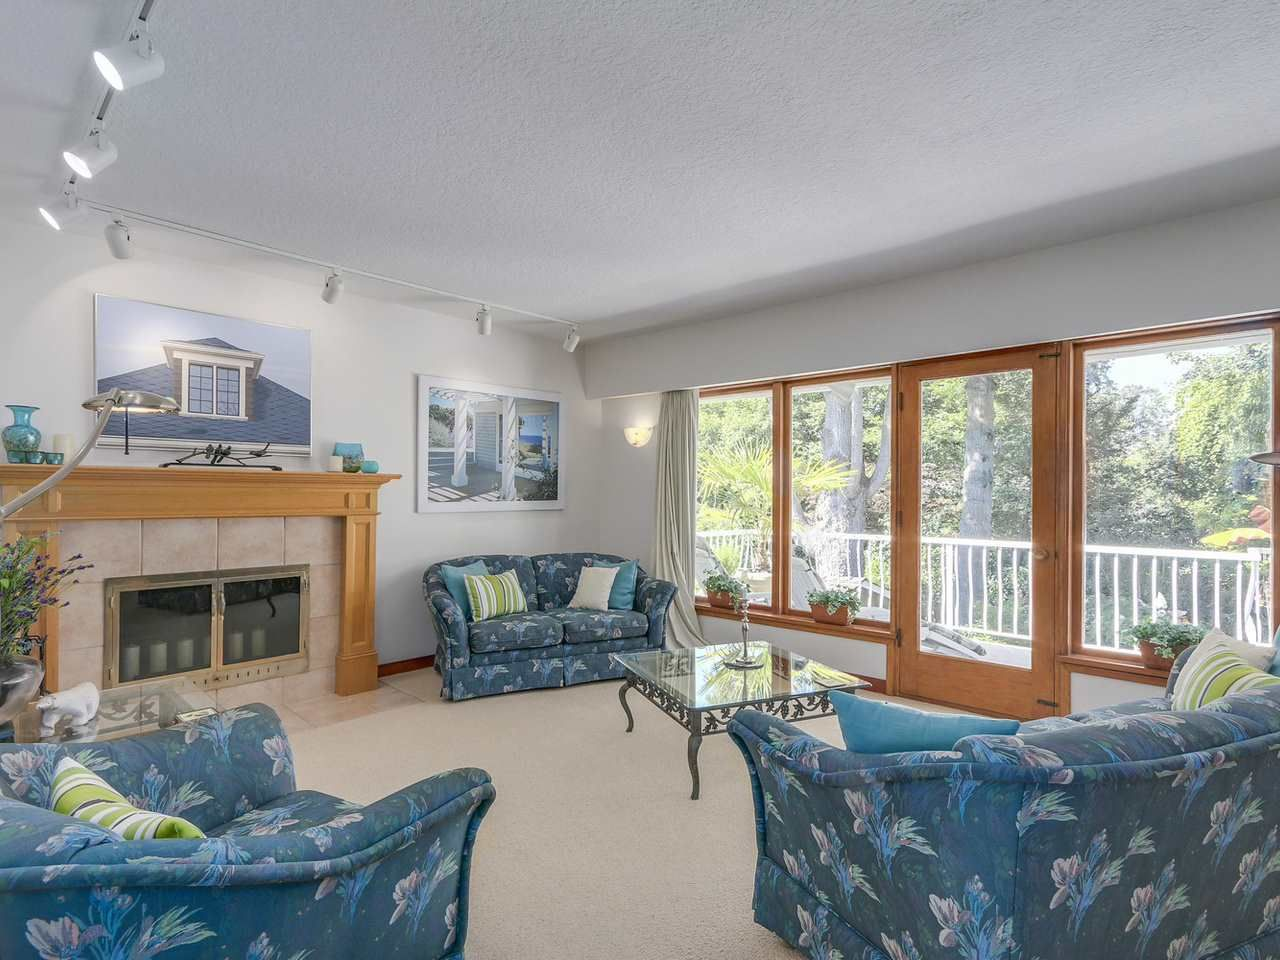 Photo 3: Photos: 587 HARRISON Avenue in Coquitlam: Coquitlam West House for sale : MLS®# R2097877